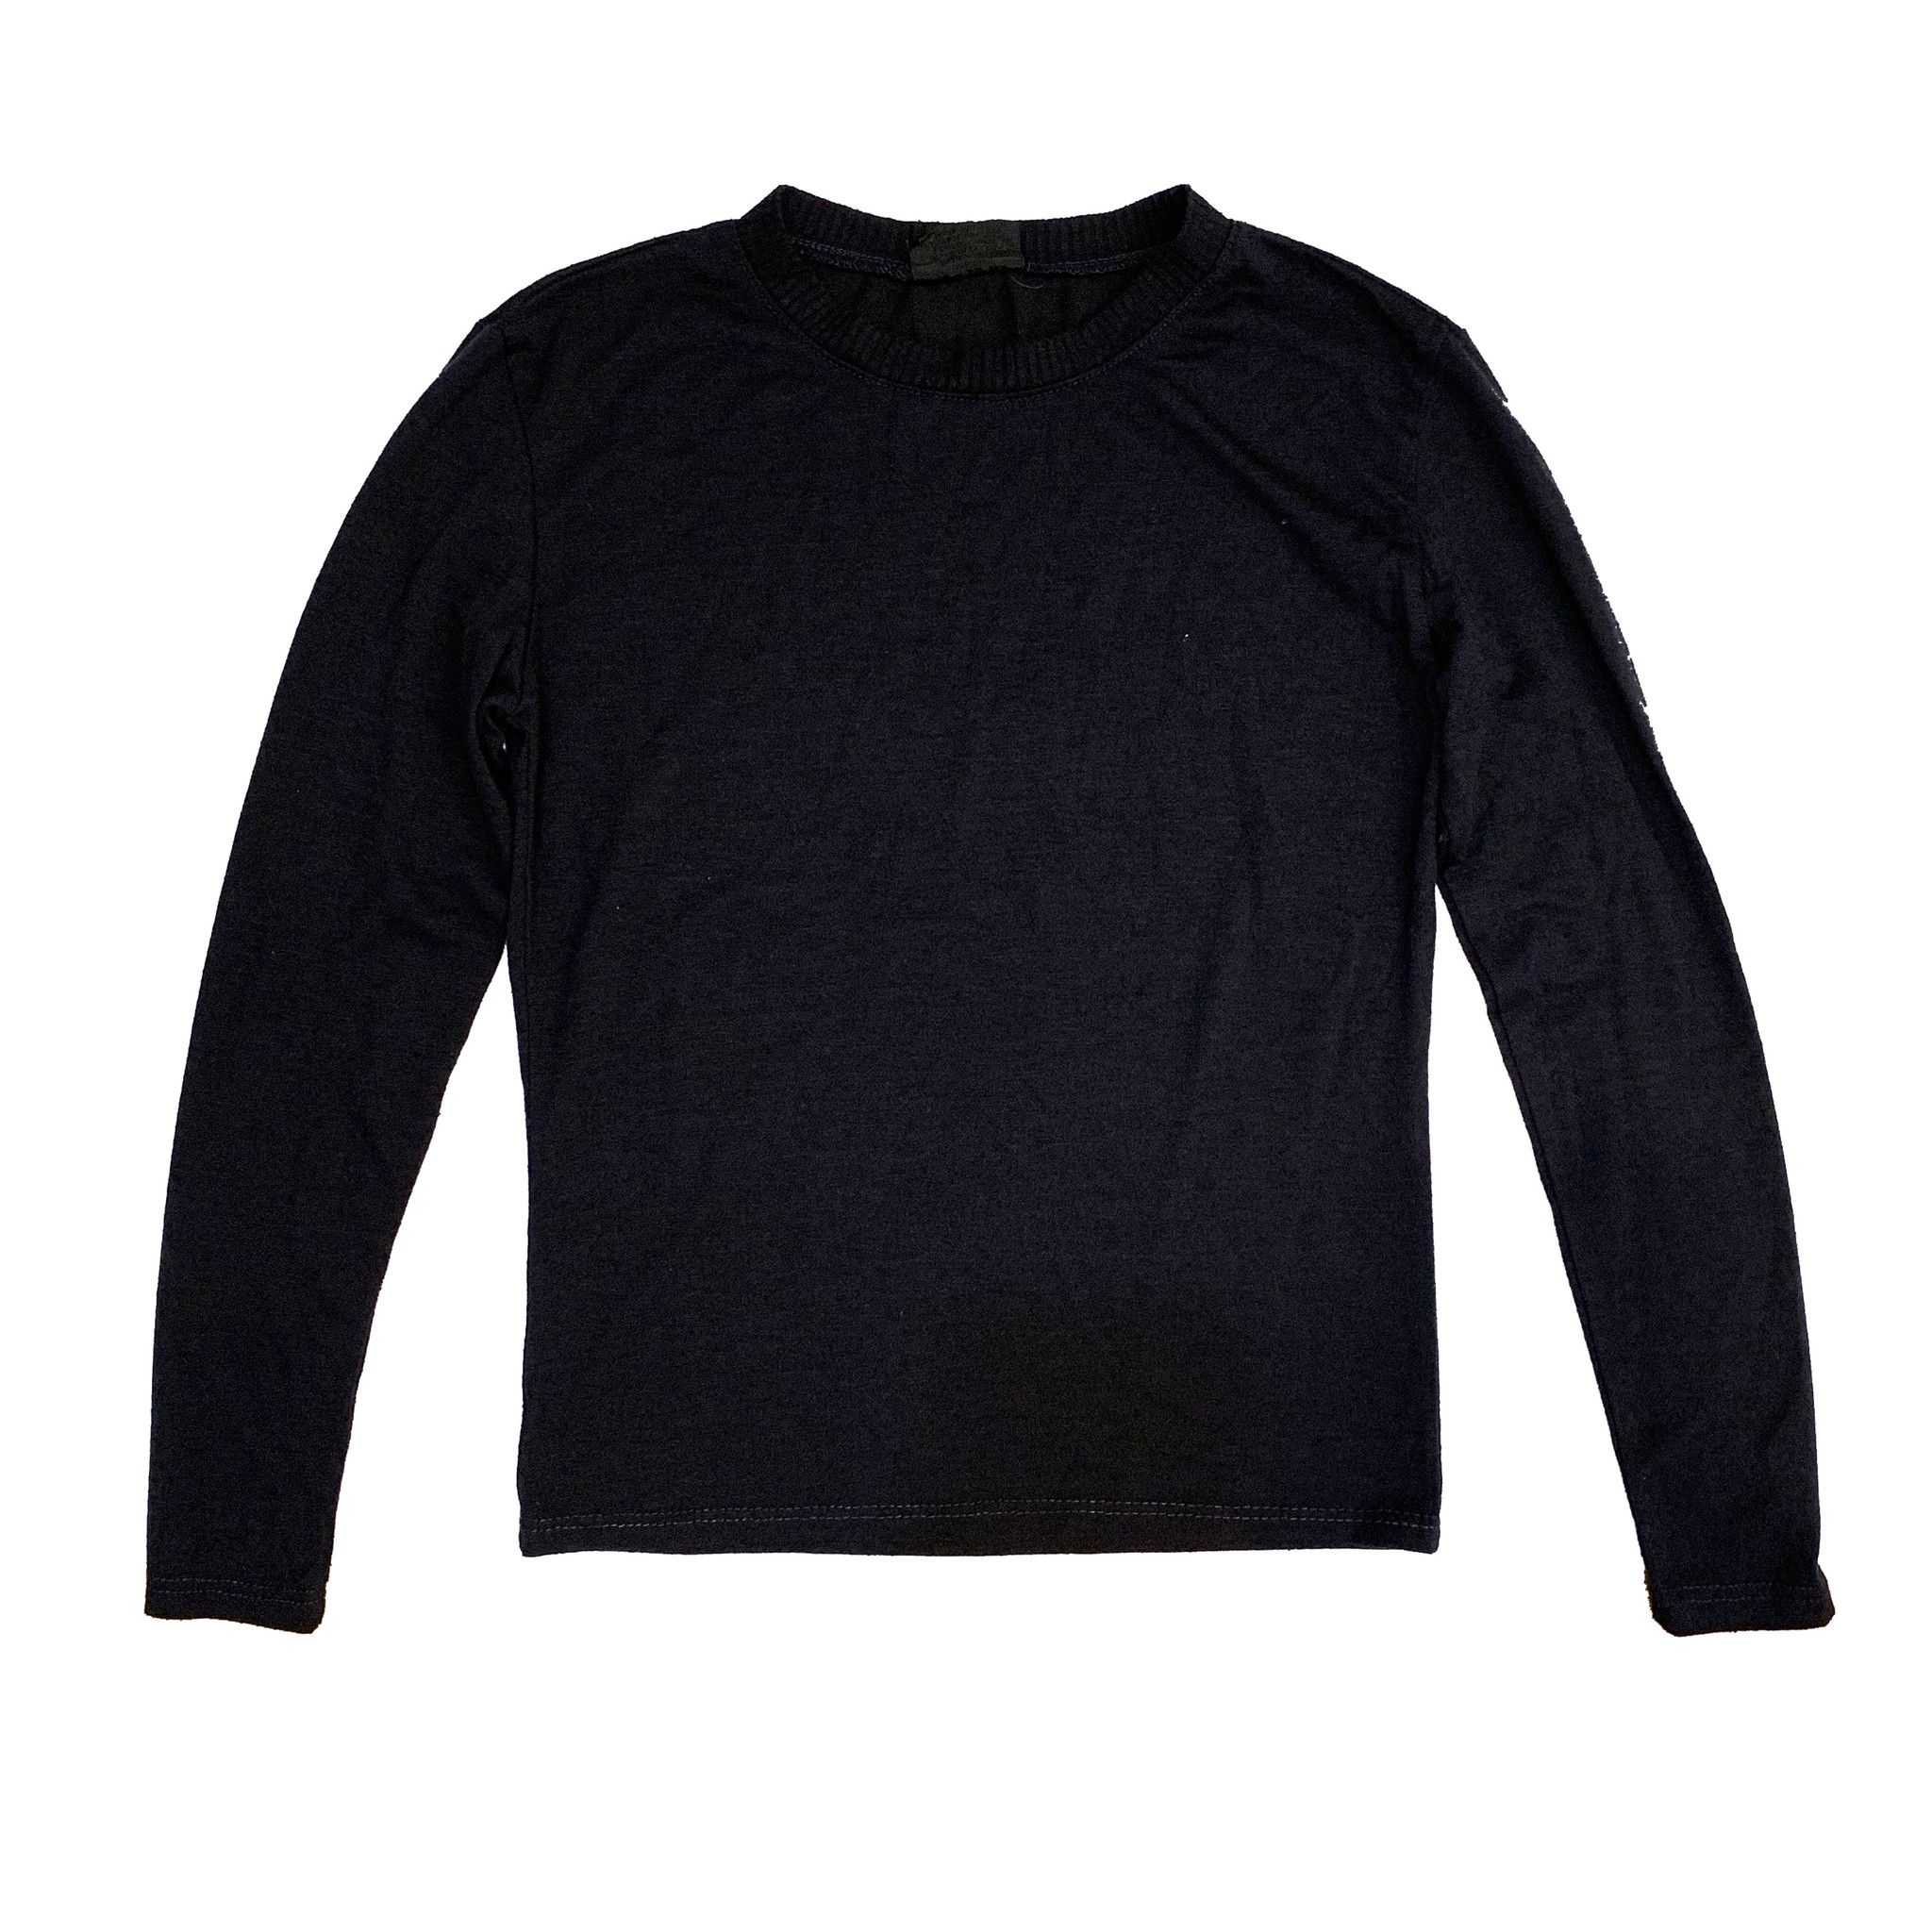 Firehouse Solid Black LS Tee